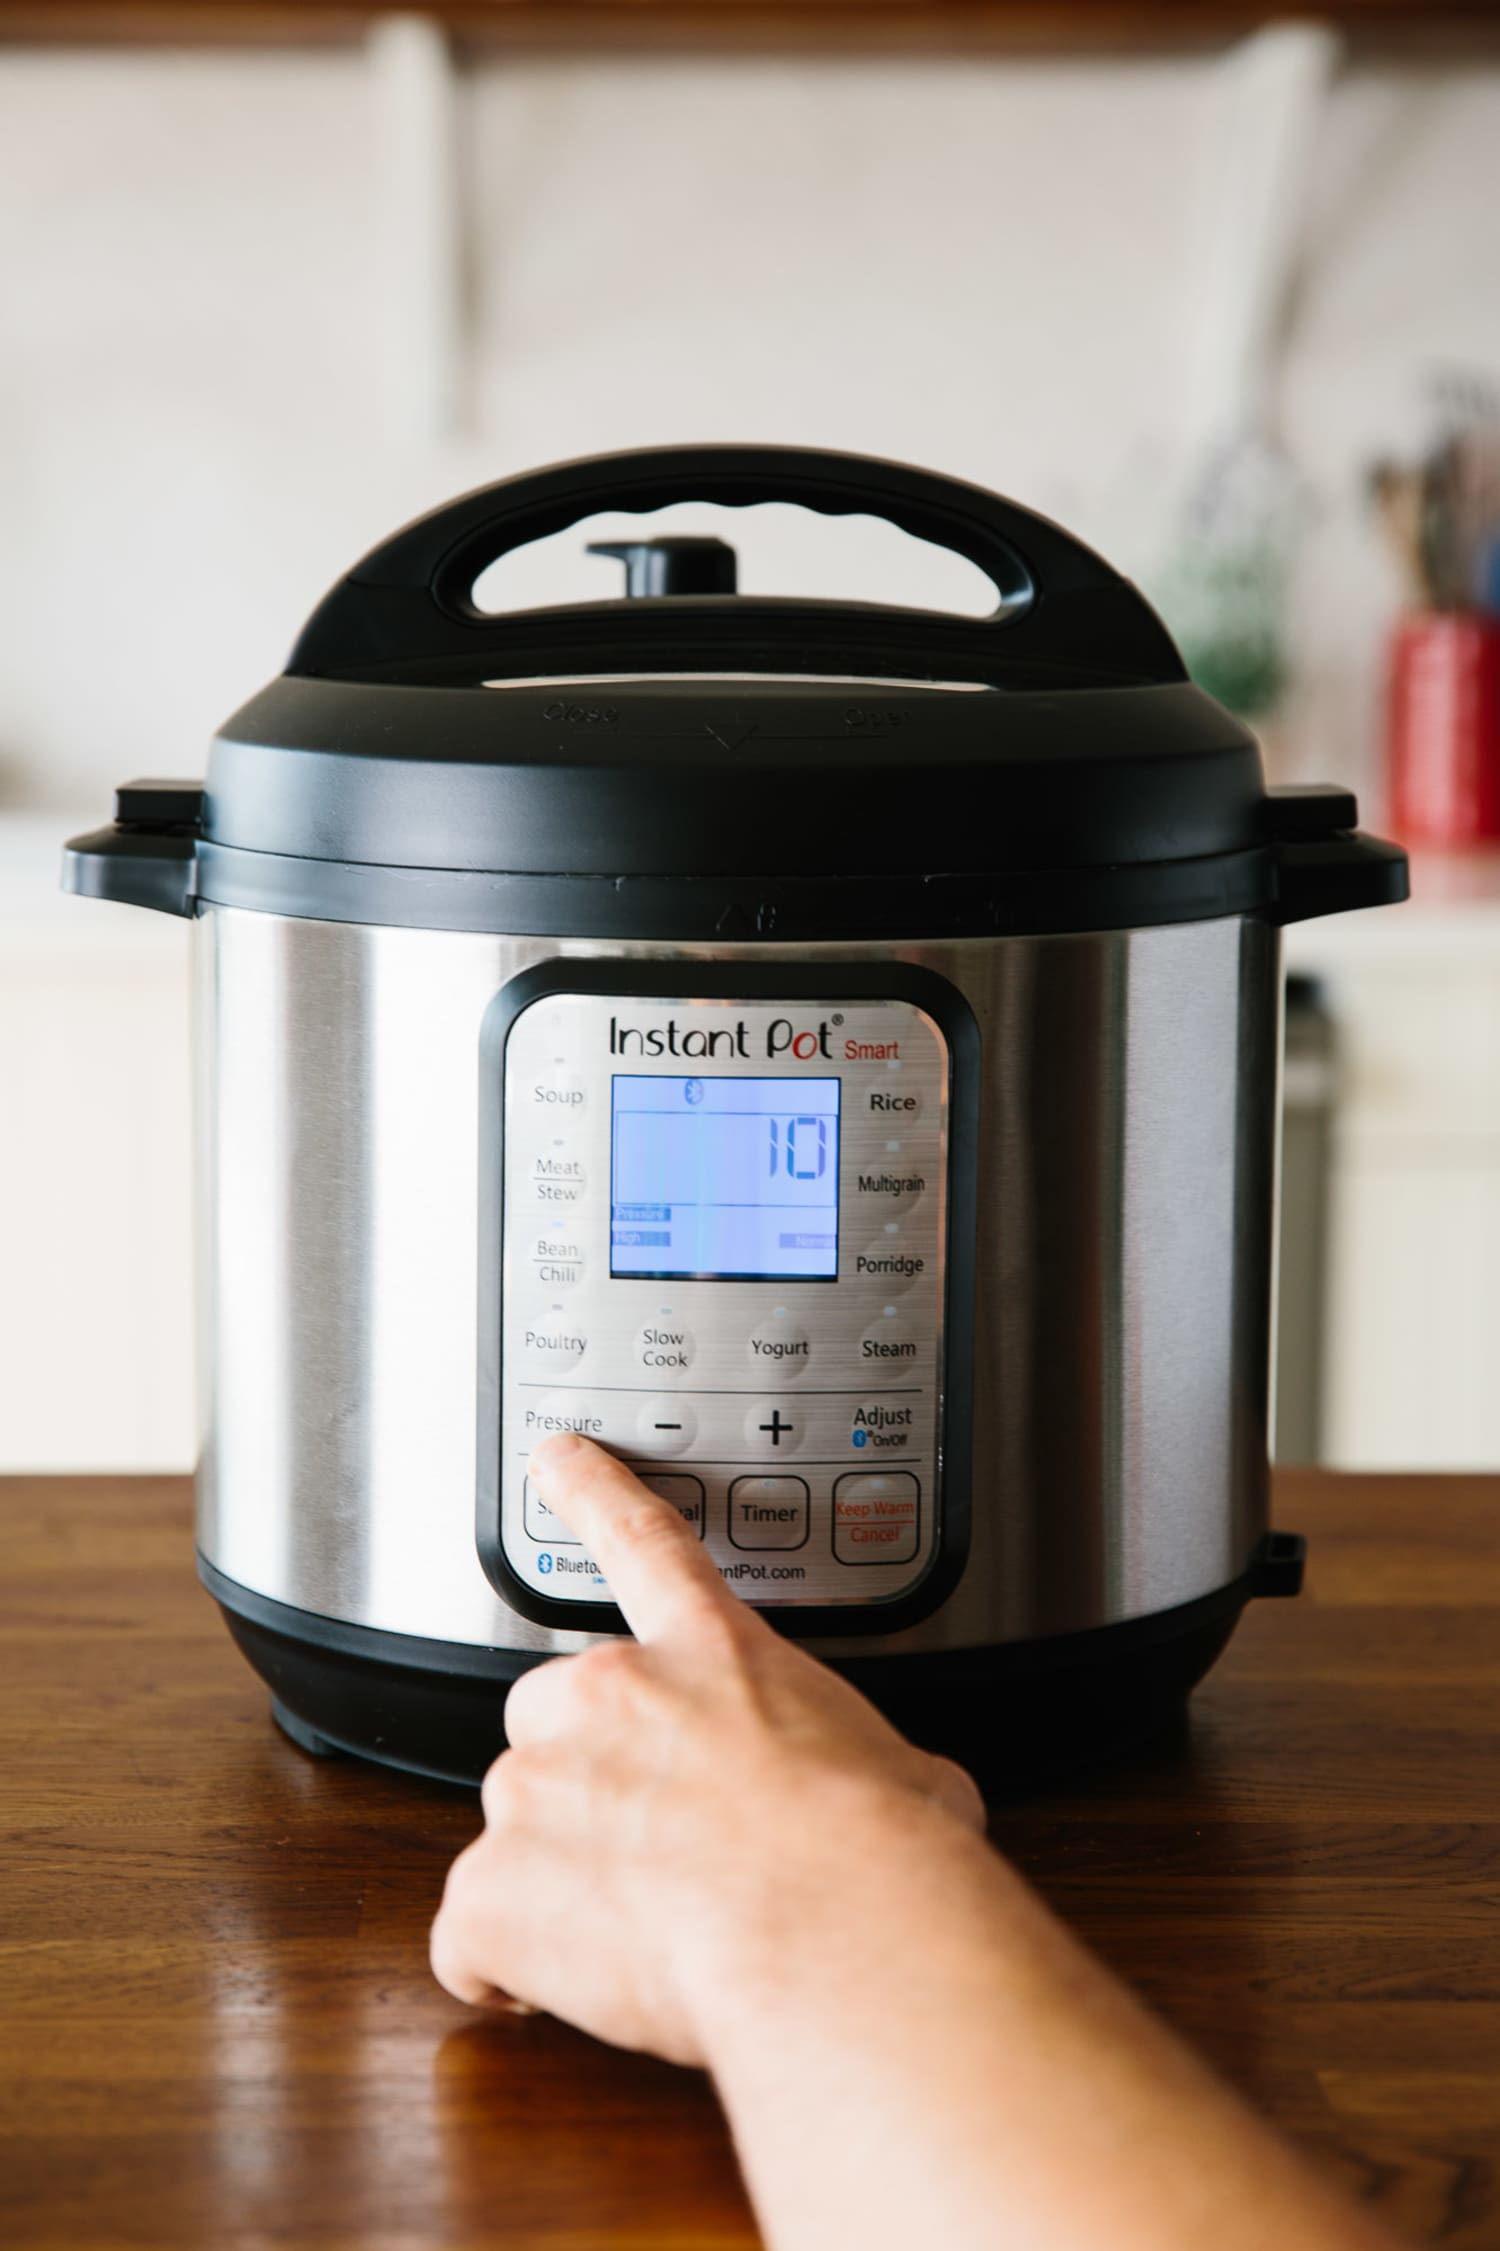 Today's the Day to Buy an Instant Pot, but Here's What You Need to Know